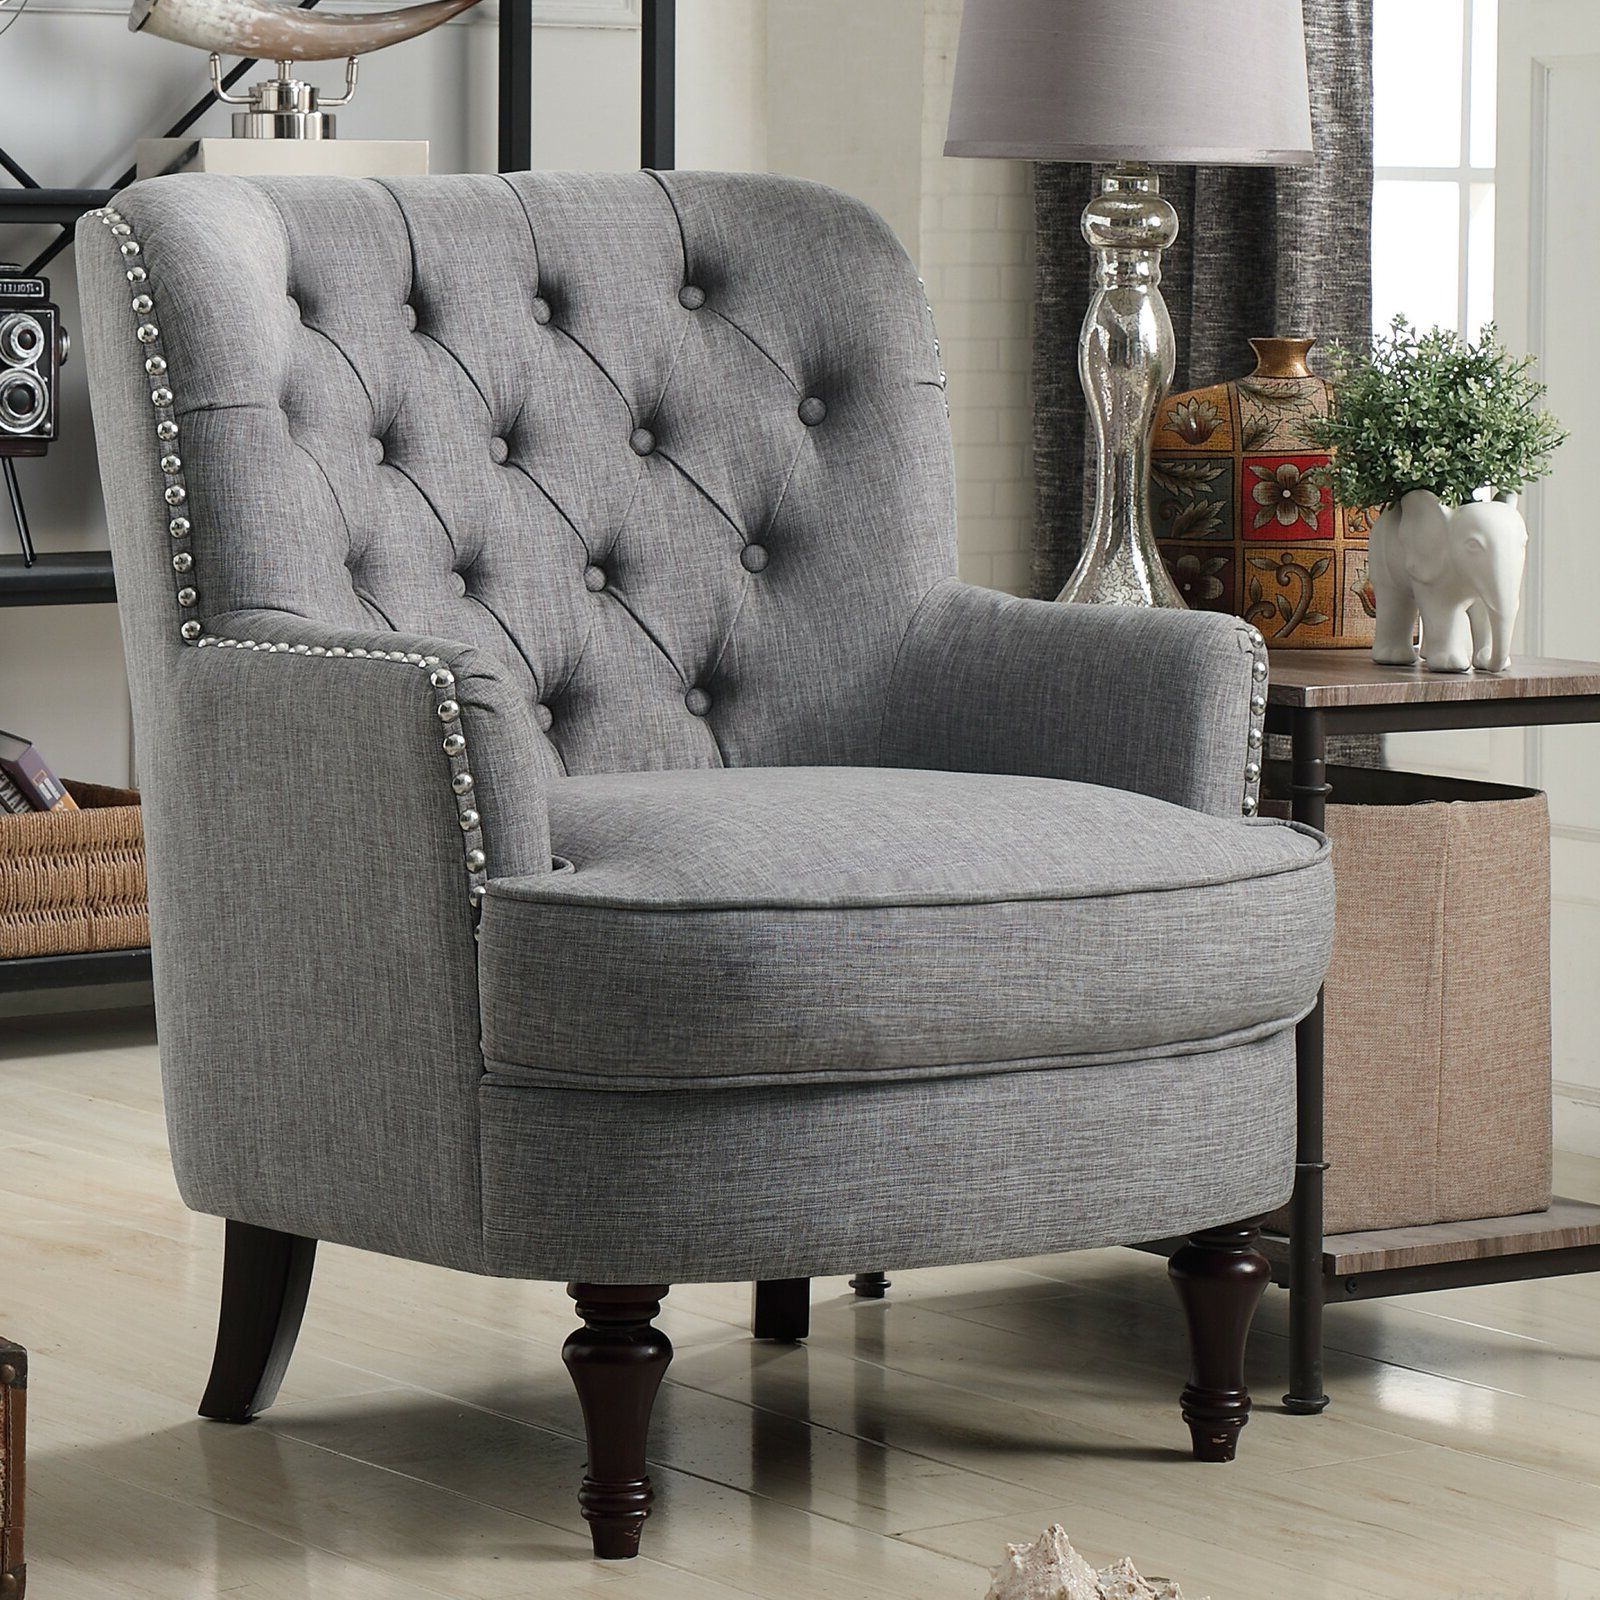 2019 Pin On Living Room/family Room With Jayde Armchairs (View 3 of 20)